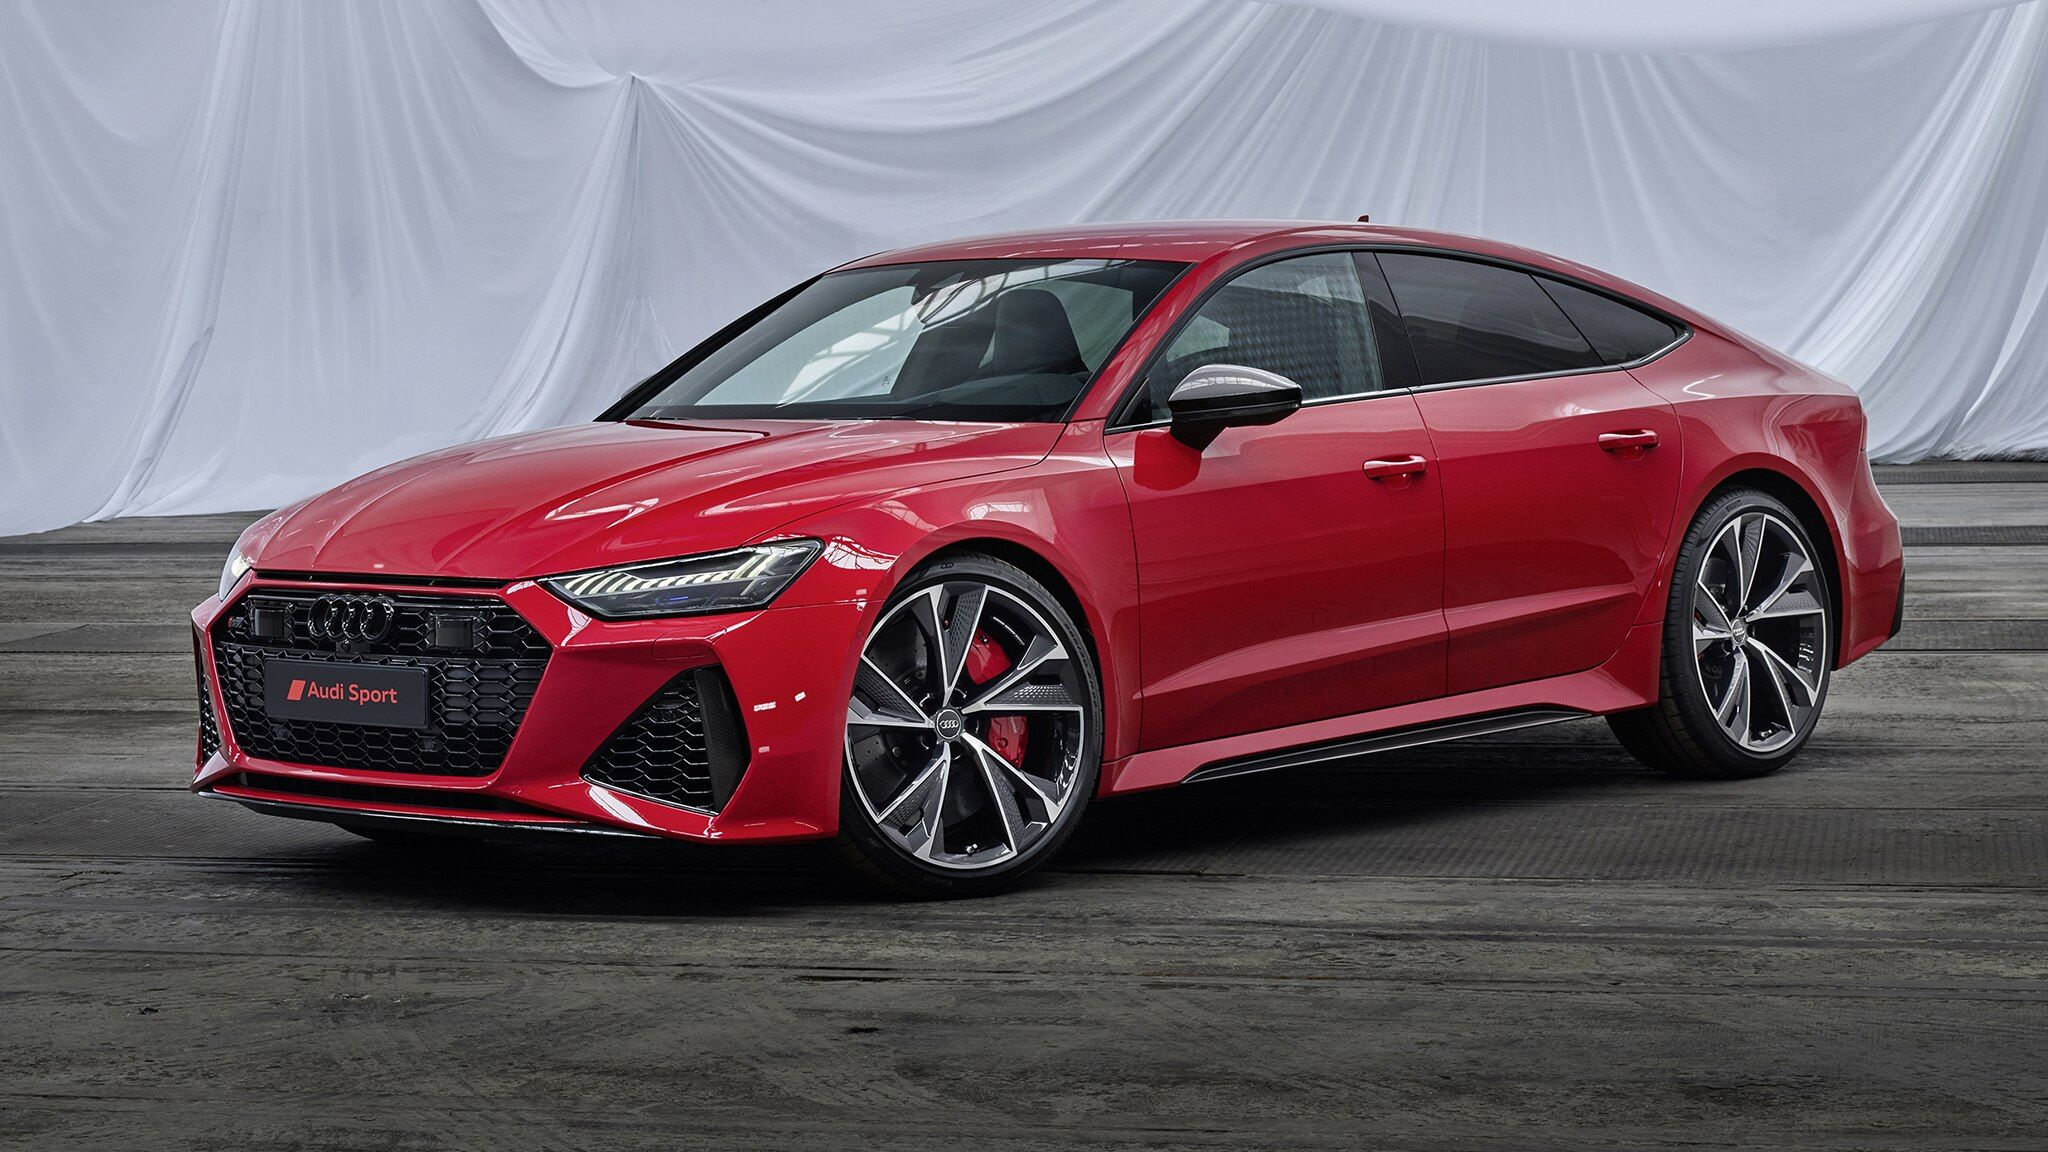 The 2020 Audi Rs7 Sportback Is A 591 Hp Monster Automobile Magazine Audi Rs7 Sportback Porsche Panamera Turbo Audi Rs7